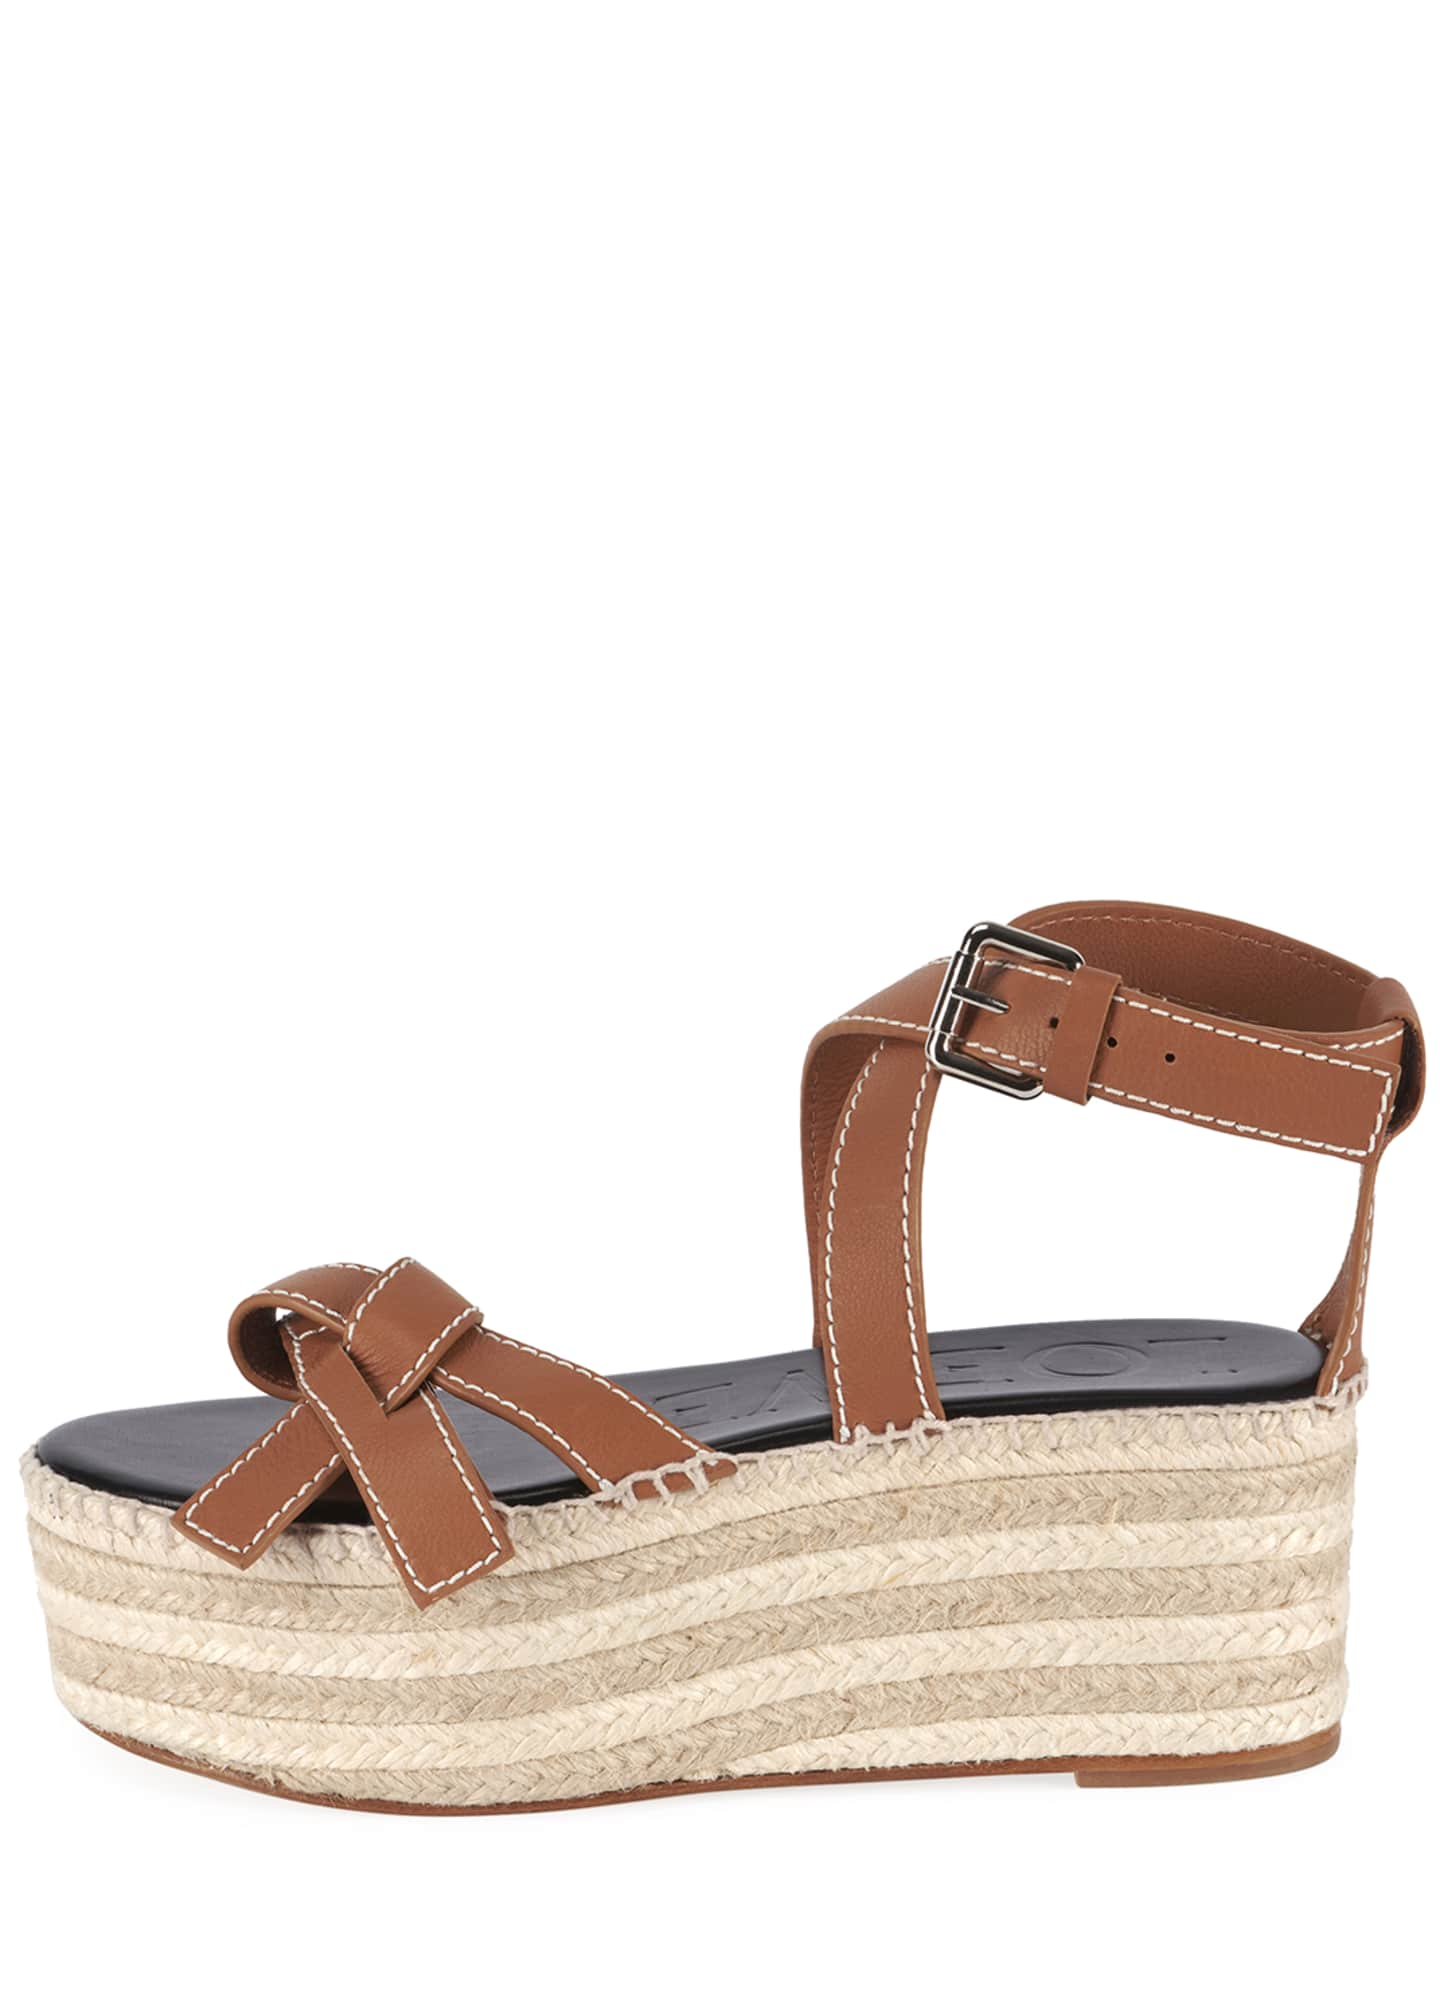 Image 2 of 4: Gate Wedge High Espadrilles